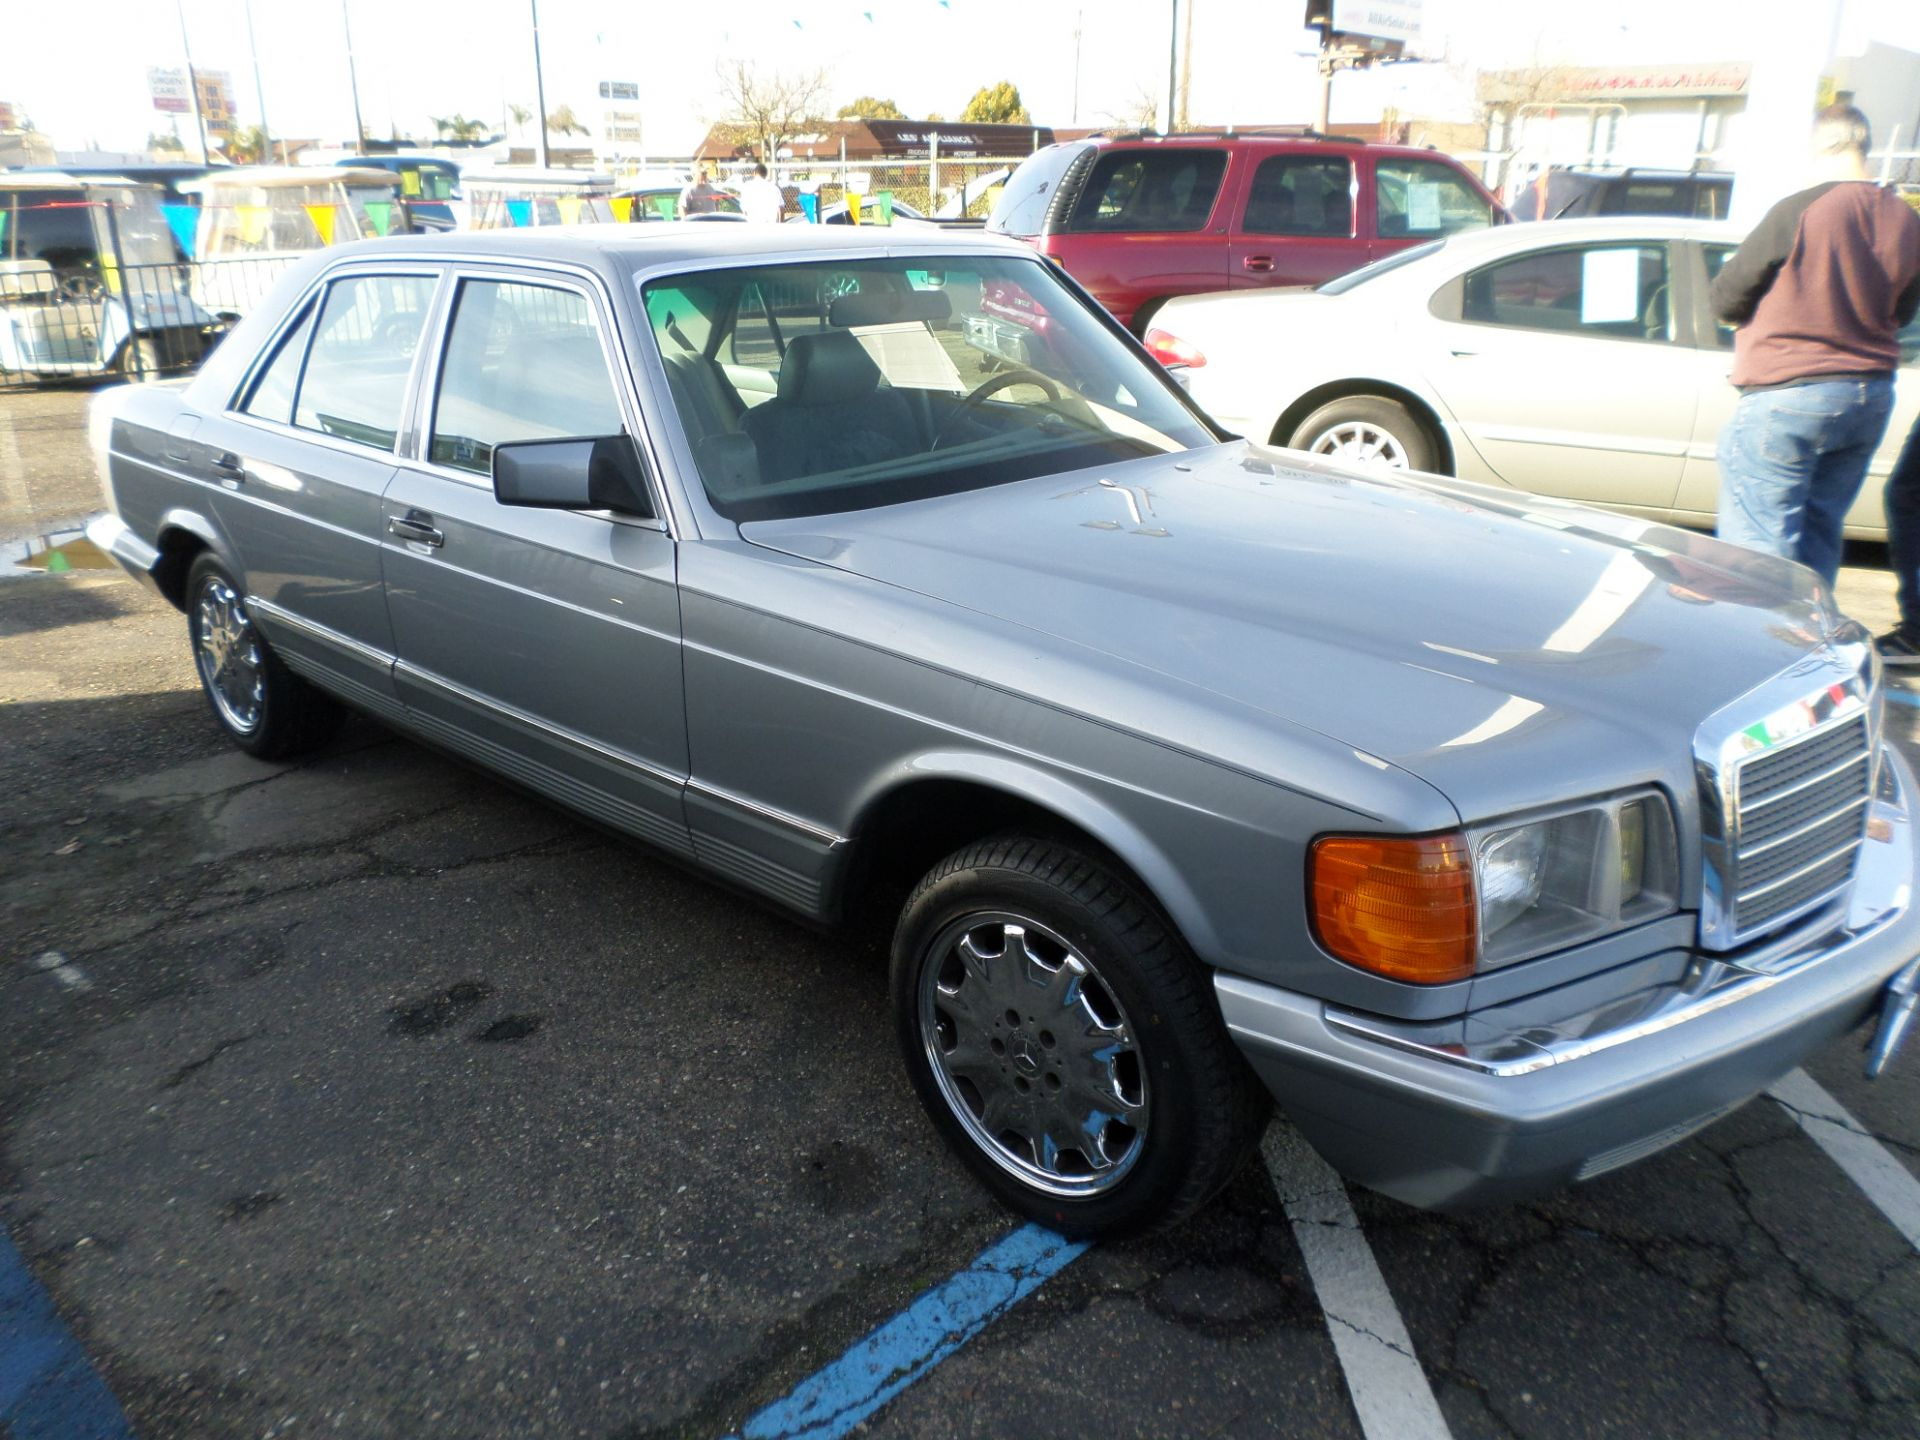 Cars For Sale In Stockton Ca: Car For Sale: 1982 Mercedes-Benz 300 SD Turbo Diesel In